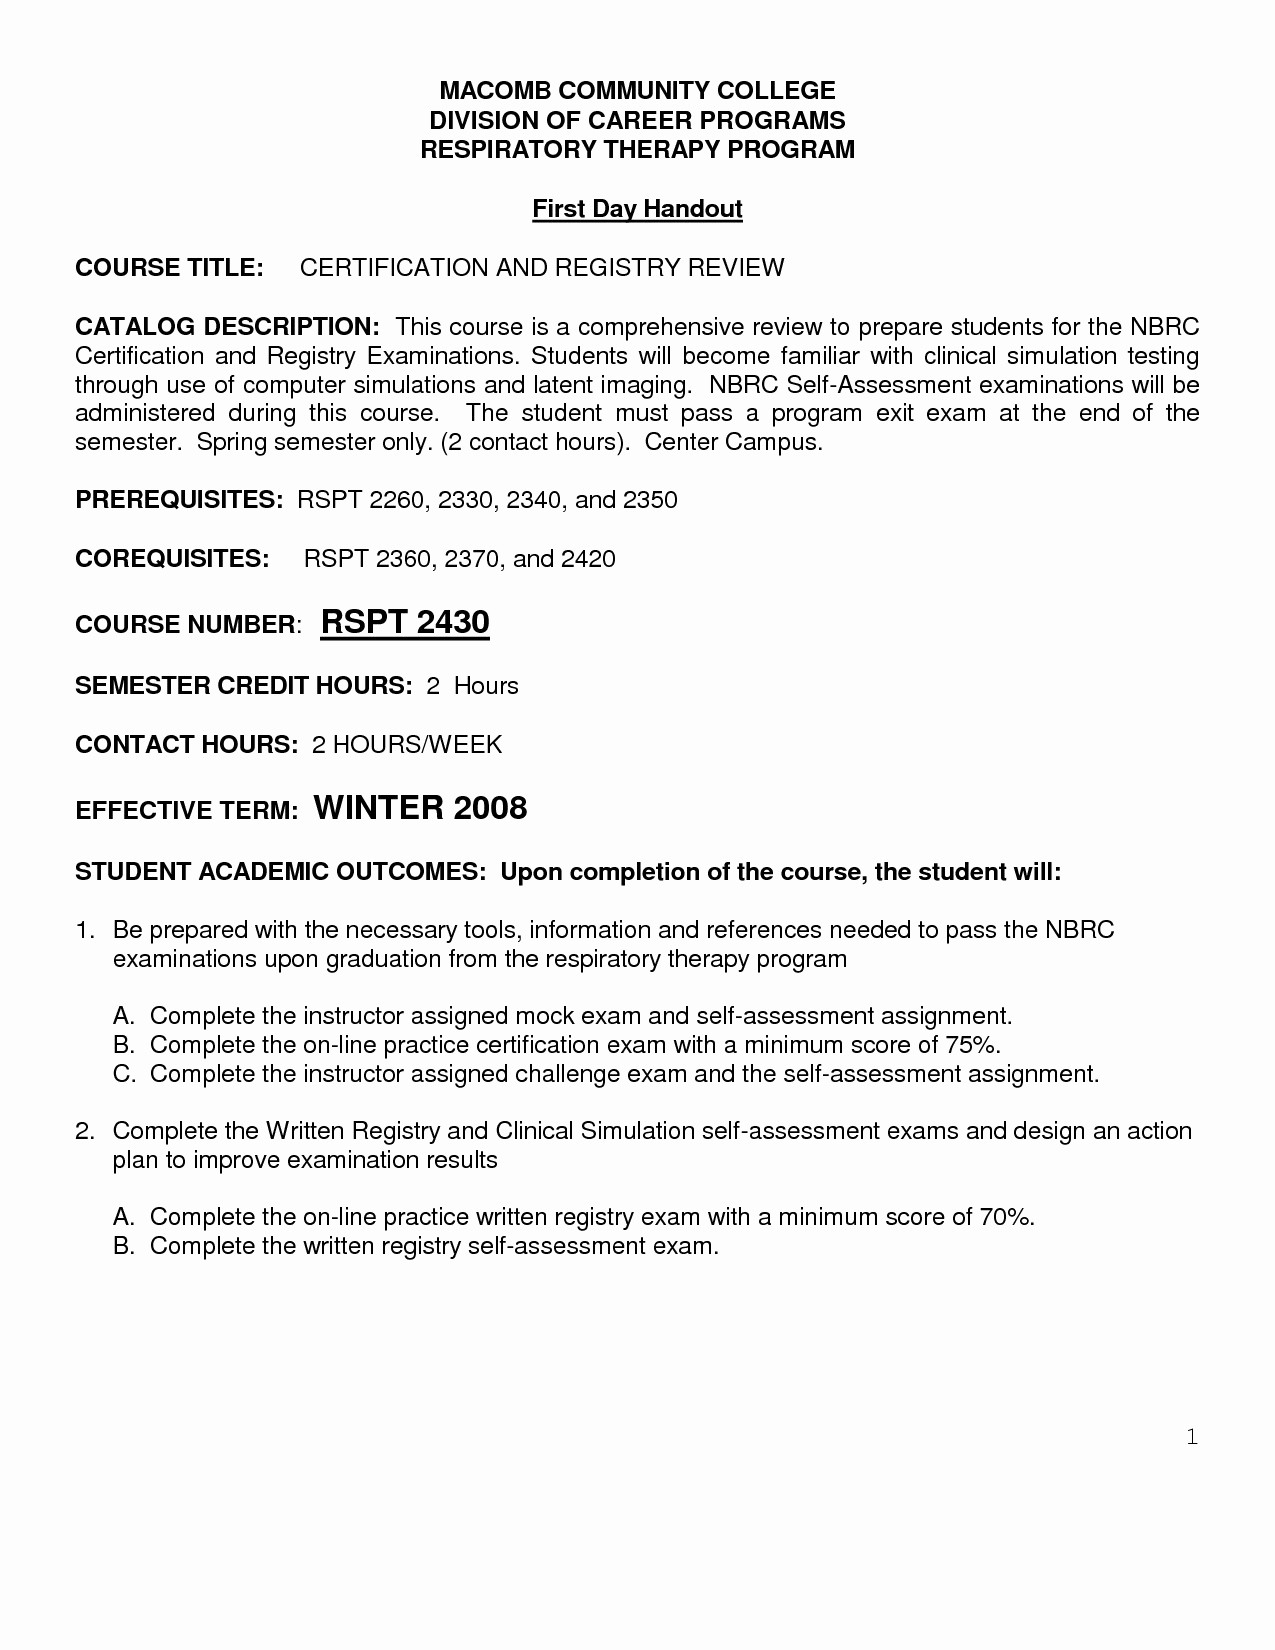 Respiratory therapy Cover Letter Template - Sample Resume Objectives for Respiratory therapist Inspirationa